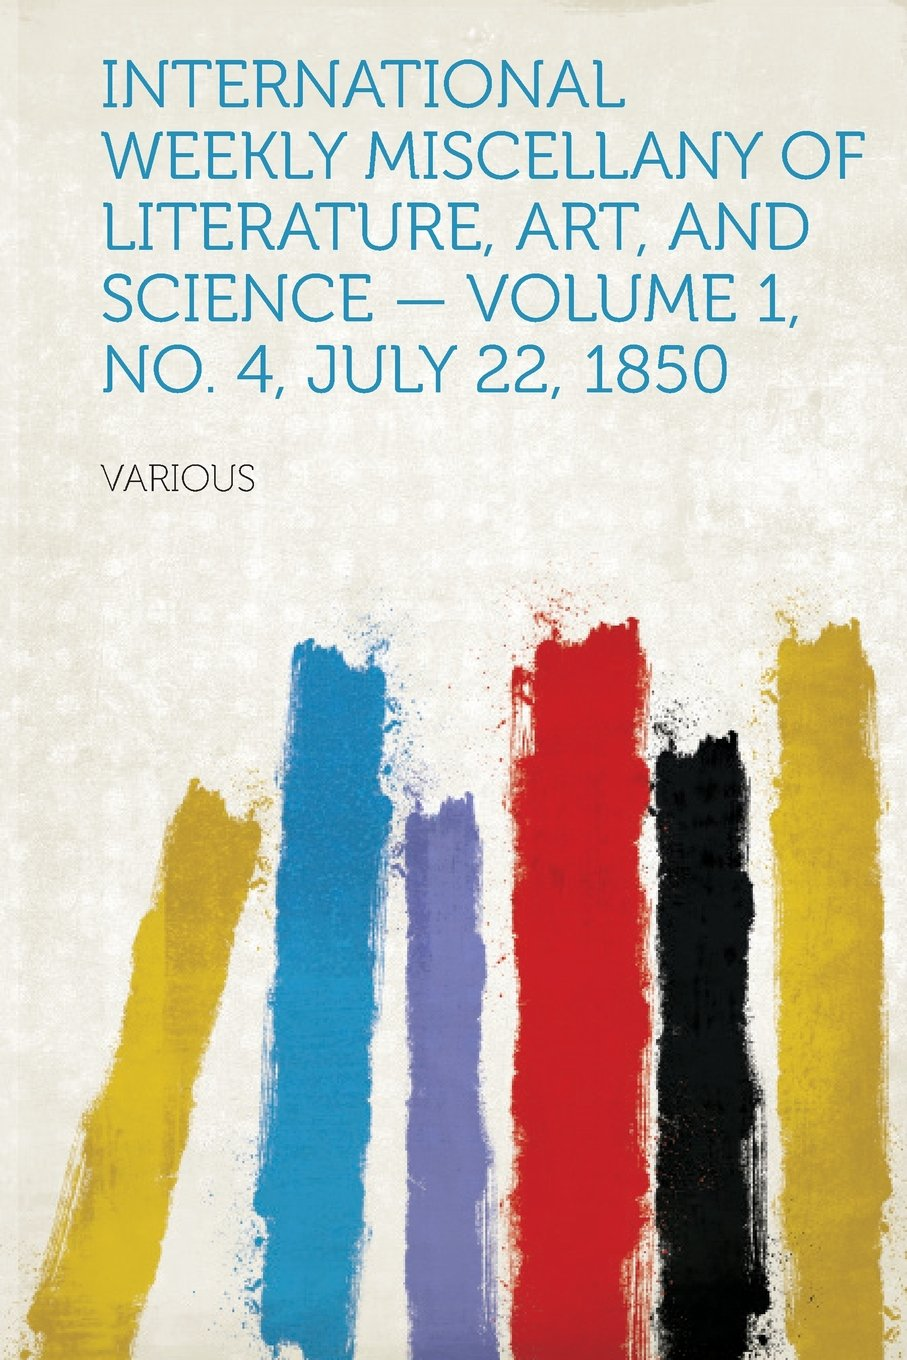 Download International Weekly Miscellany of Literature, Art, and Science - Volume 1, No. 4, July 22, 1850 PDF